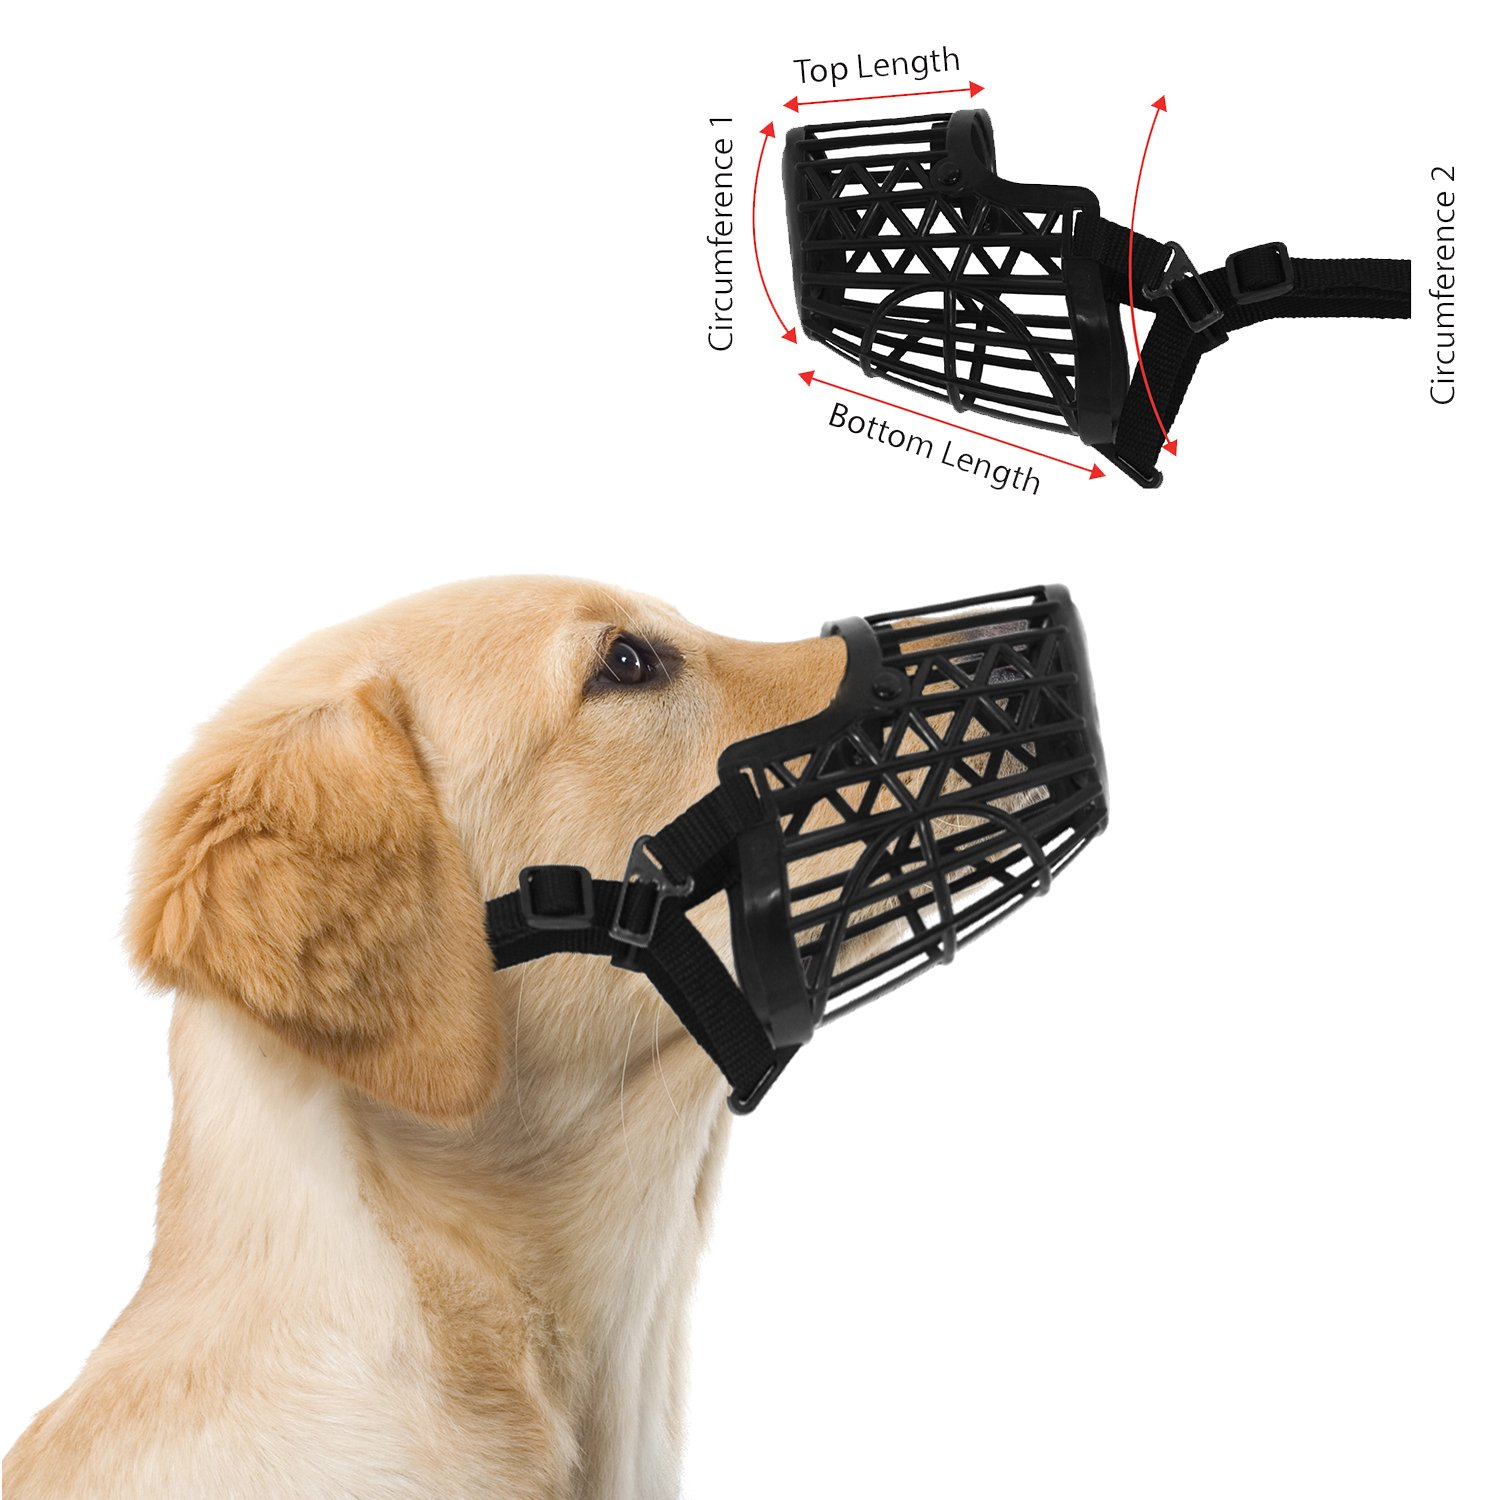 Downtown Pet Supply Basket Cage Dog Muzzle Size 7 - XX LARGE - Adjustable Straps - BLACK, by